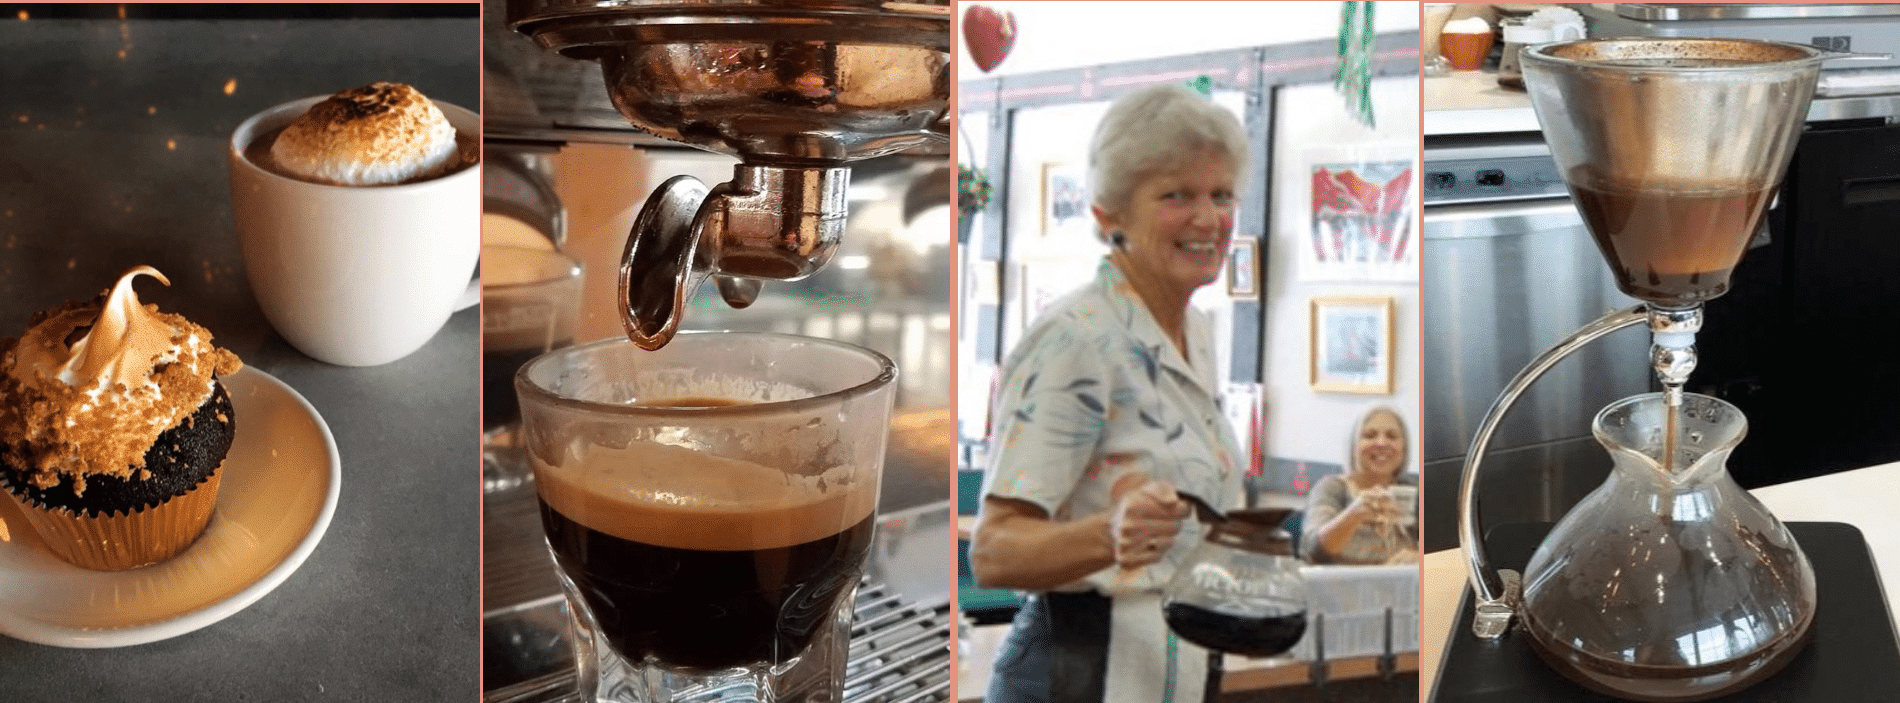 coffee being brewed and served by a lady wearing an apron